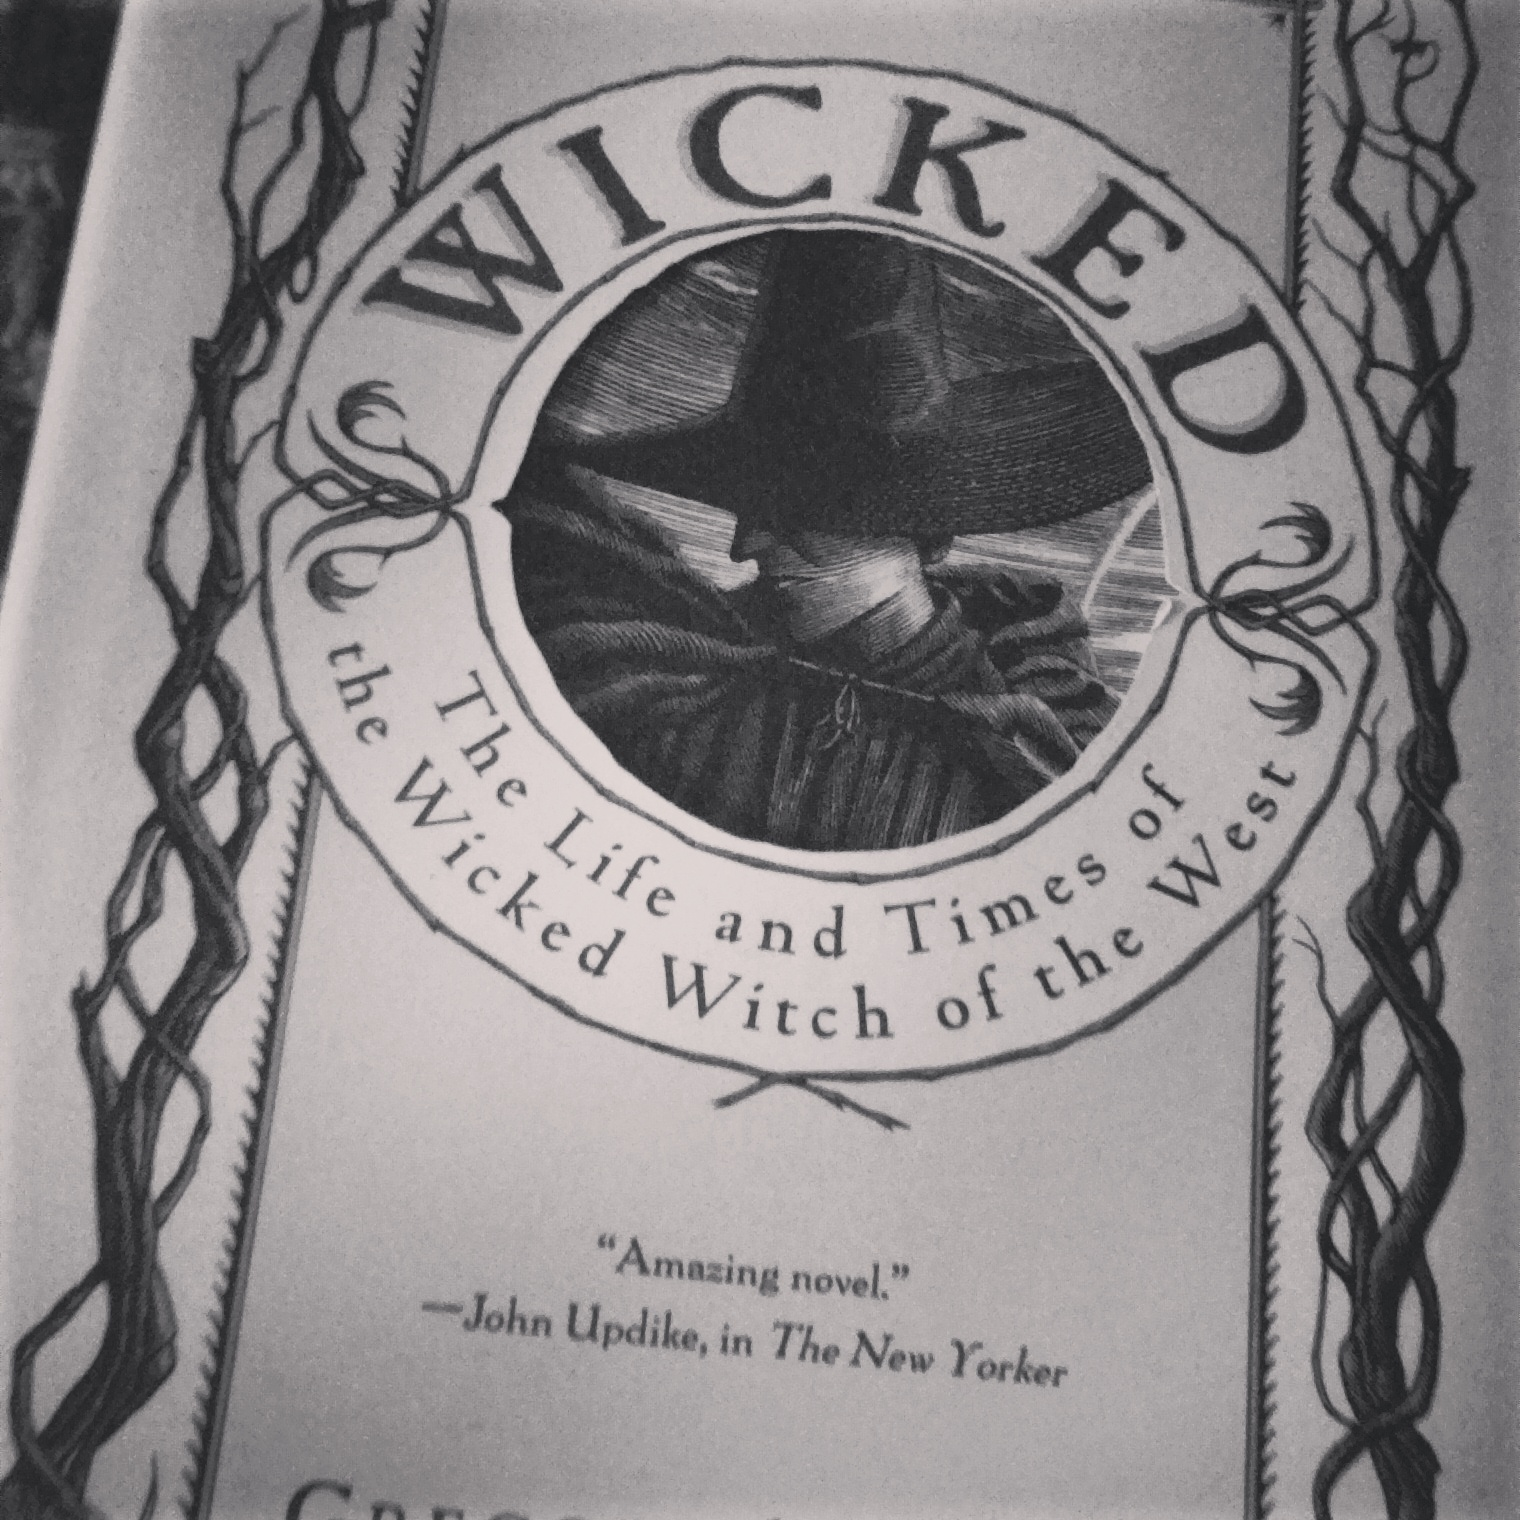 Currently Reading: Wicked by Gregory Maguire